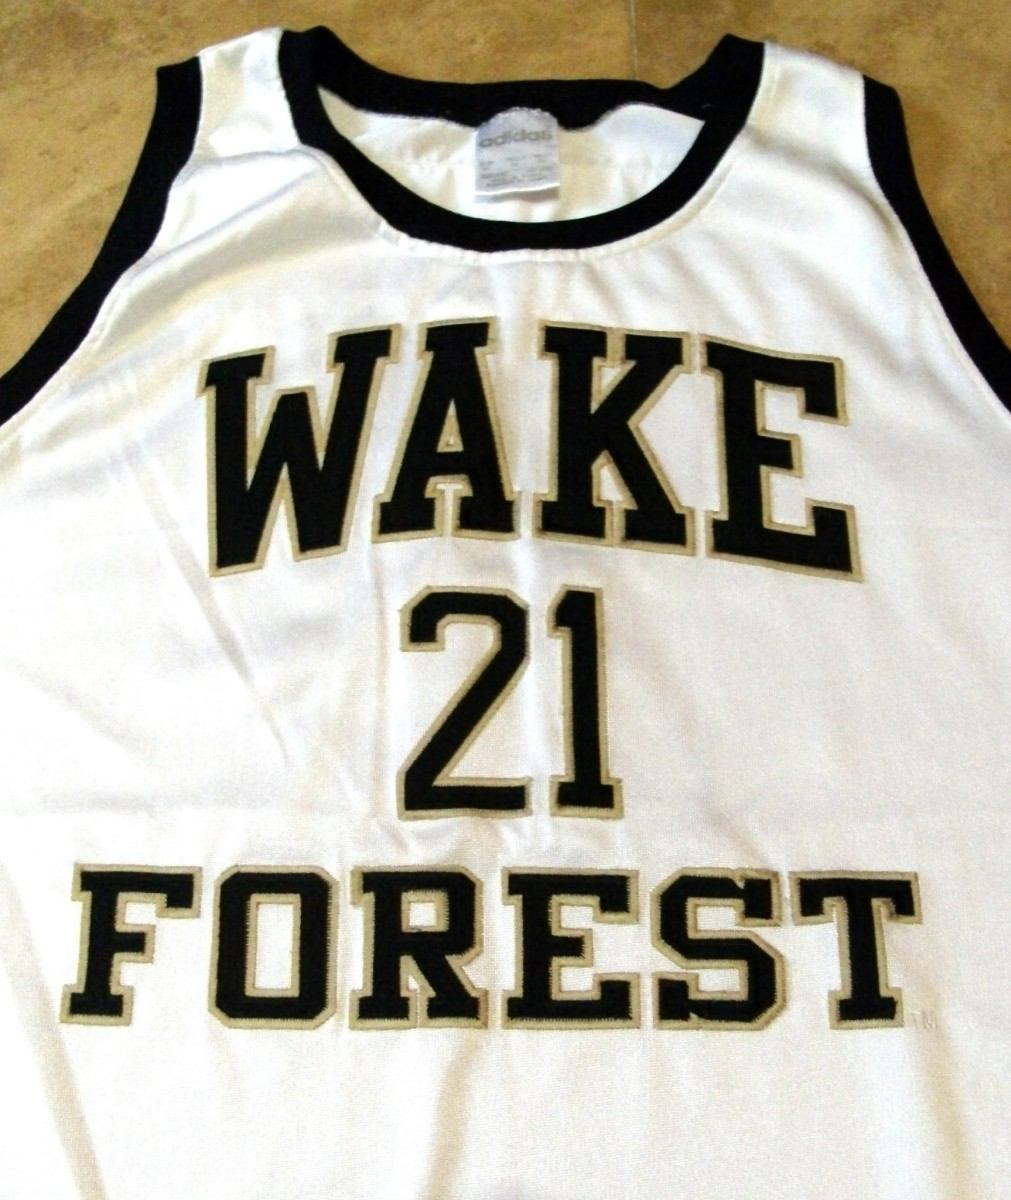 hot sale online 154dc 6ebe9 Jersey, Tim Duncan, 2xl Adulto, Spurs, Wake Forest, adidas - $ 699.00